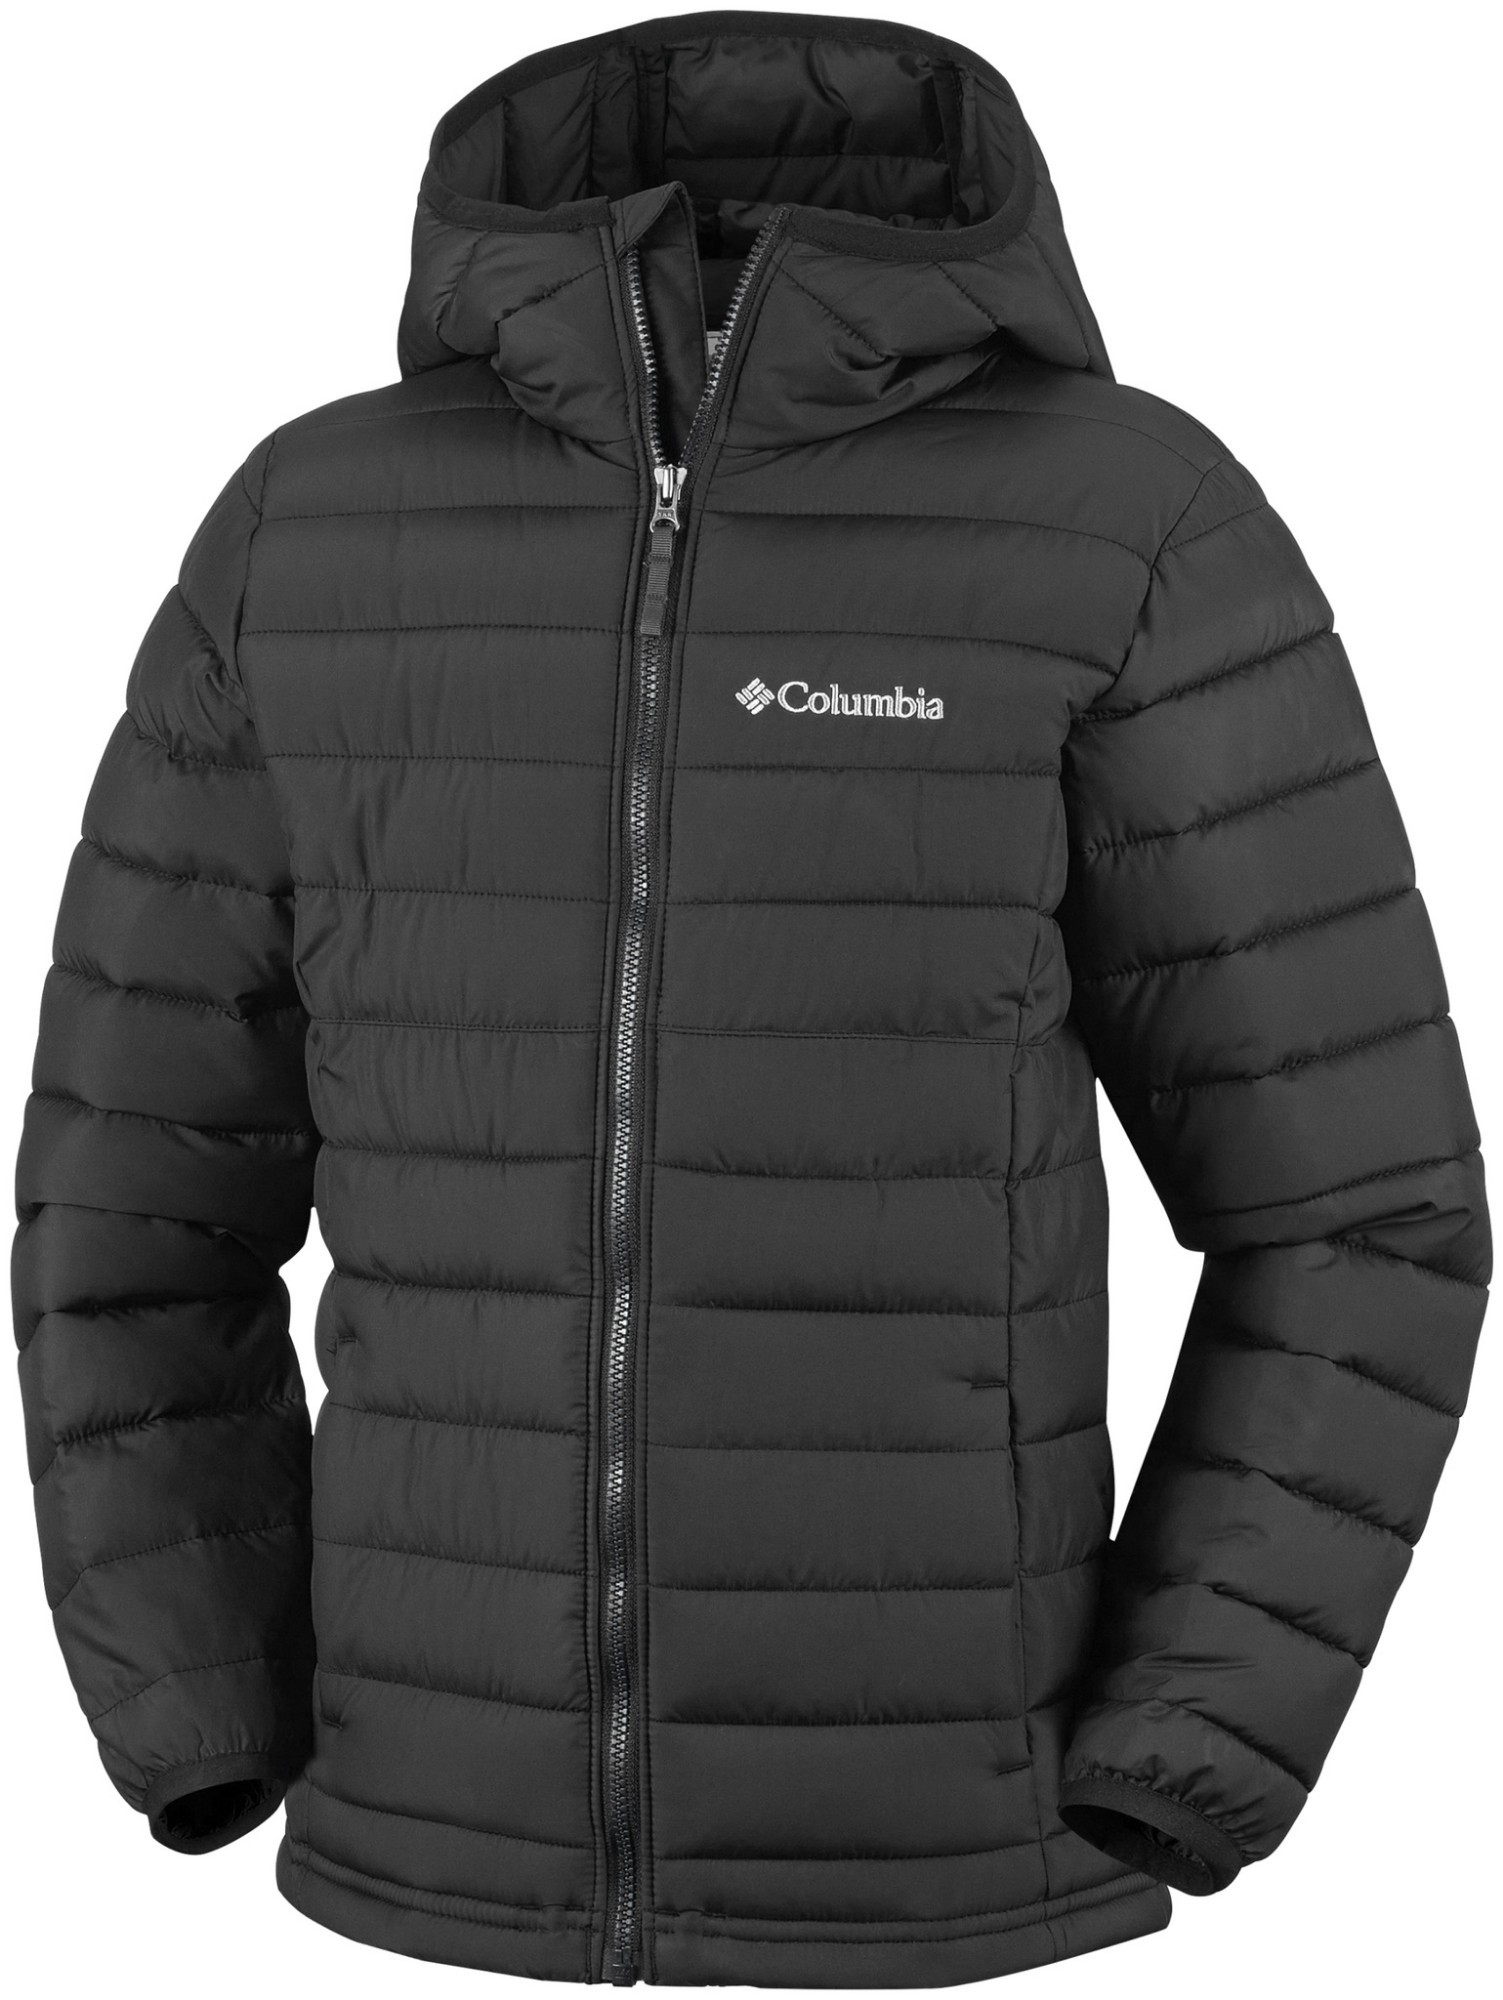 Columbia Powder Lite Boys Hooded Jacket Black 140